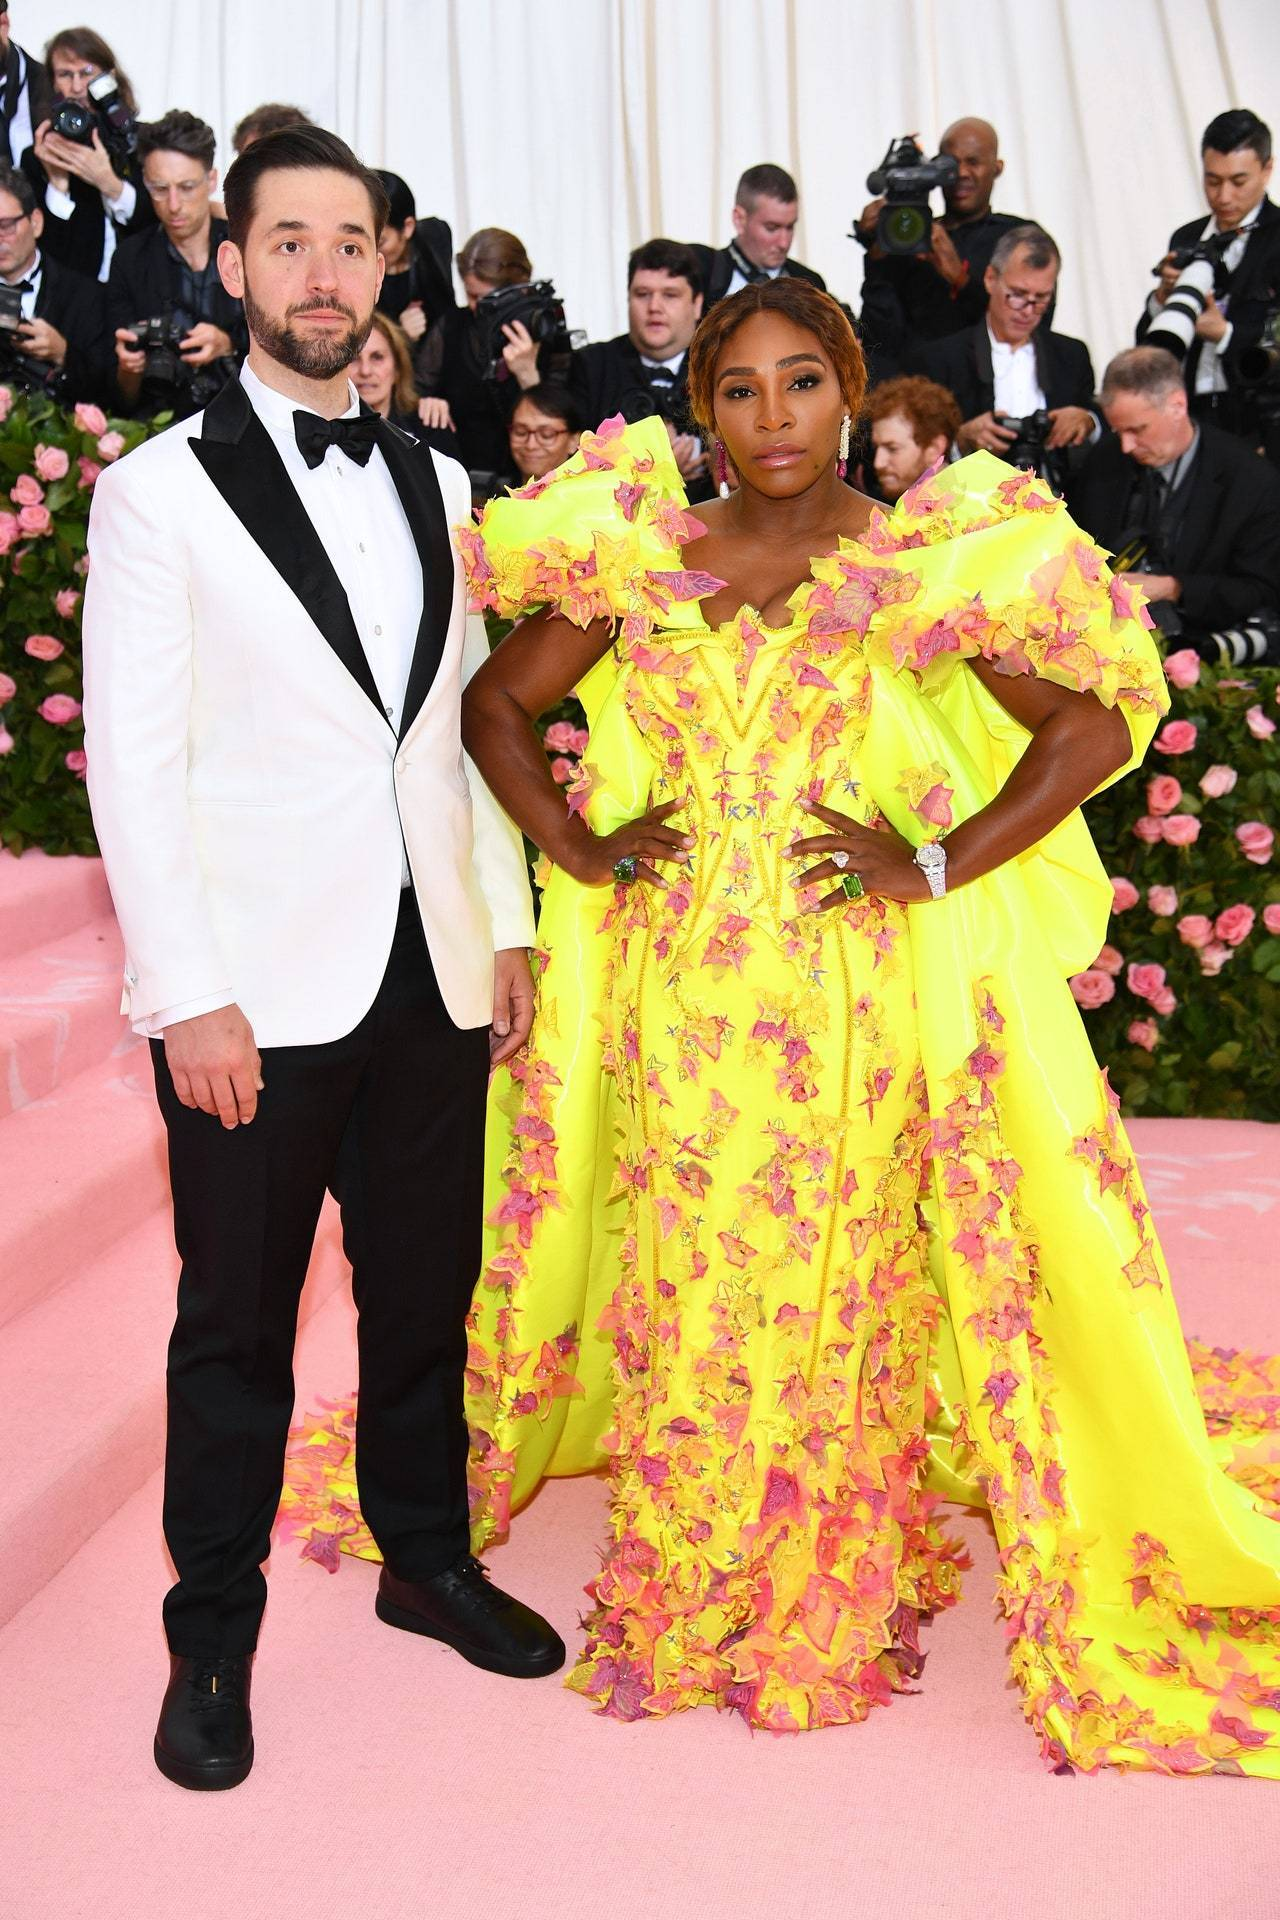 Nowy Jork: Serena Williams i Alexis Ohanian na gali Met, 2019 r. (Fot. Dimitrios Kambouris/Getty Images dla The Met Museum/Vogue)